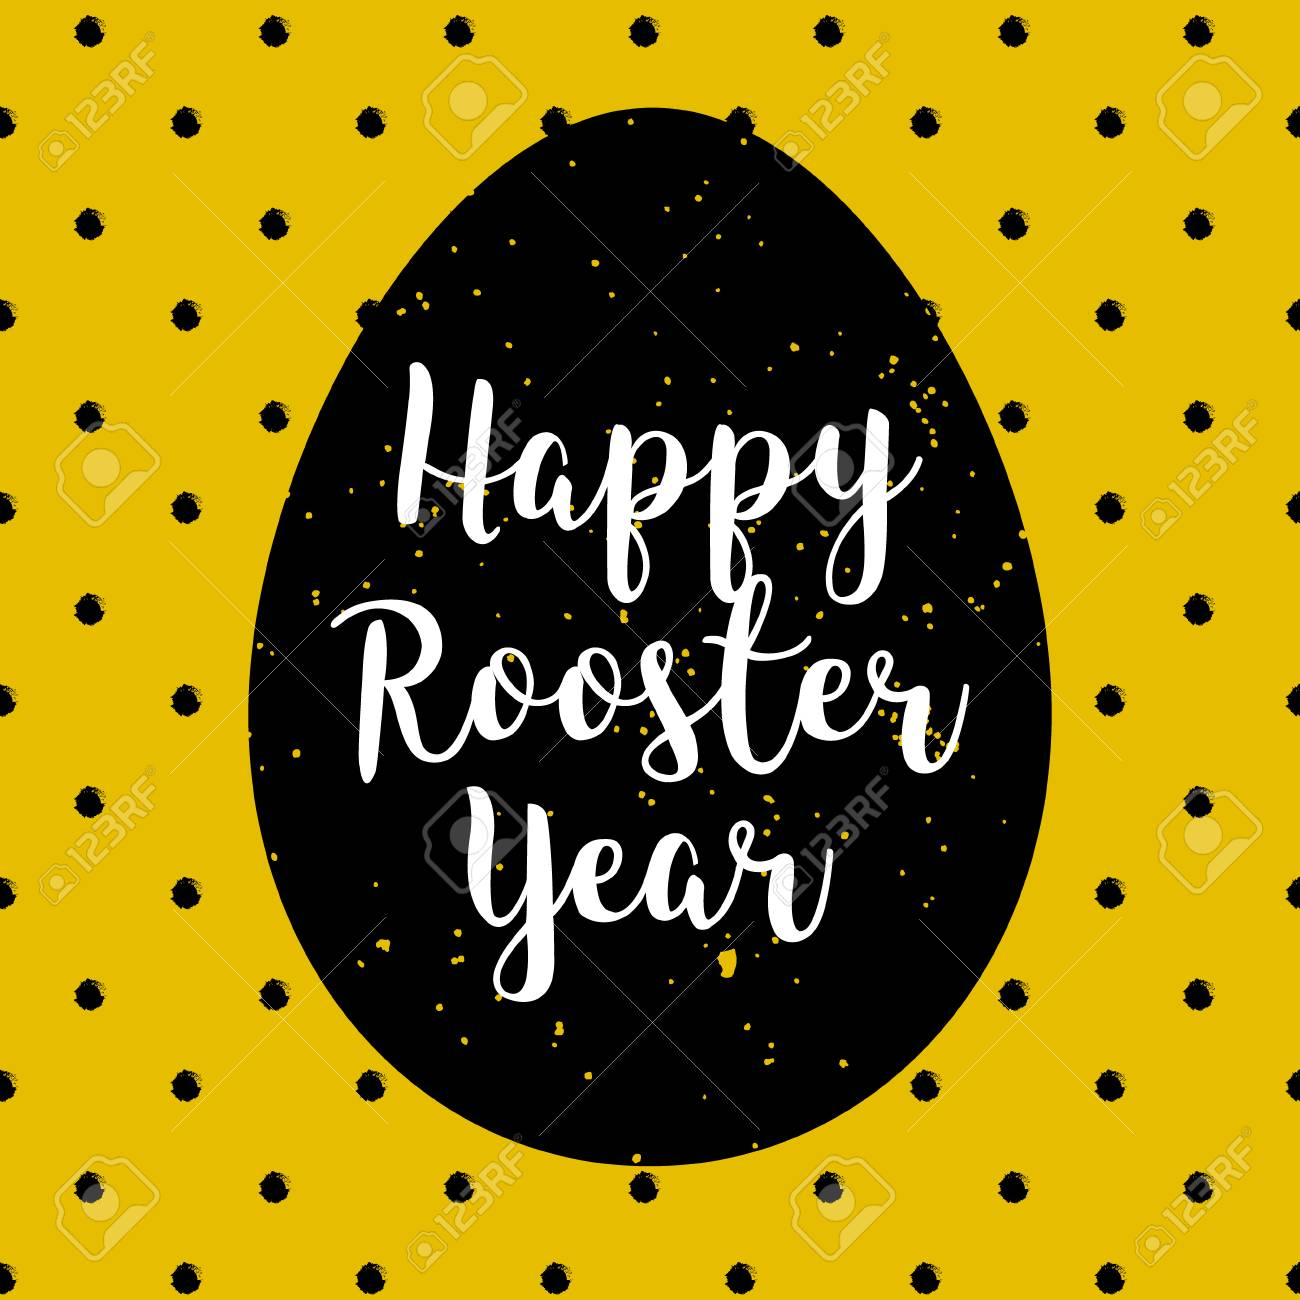 Happy Rooster Year polka dot card with silhouette of egg. Lettering style with calligraphic text